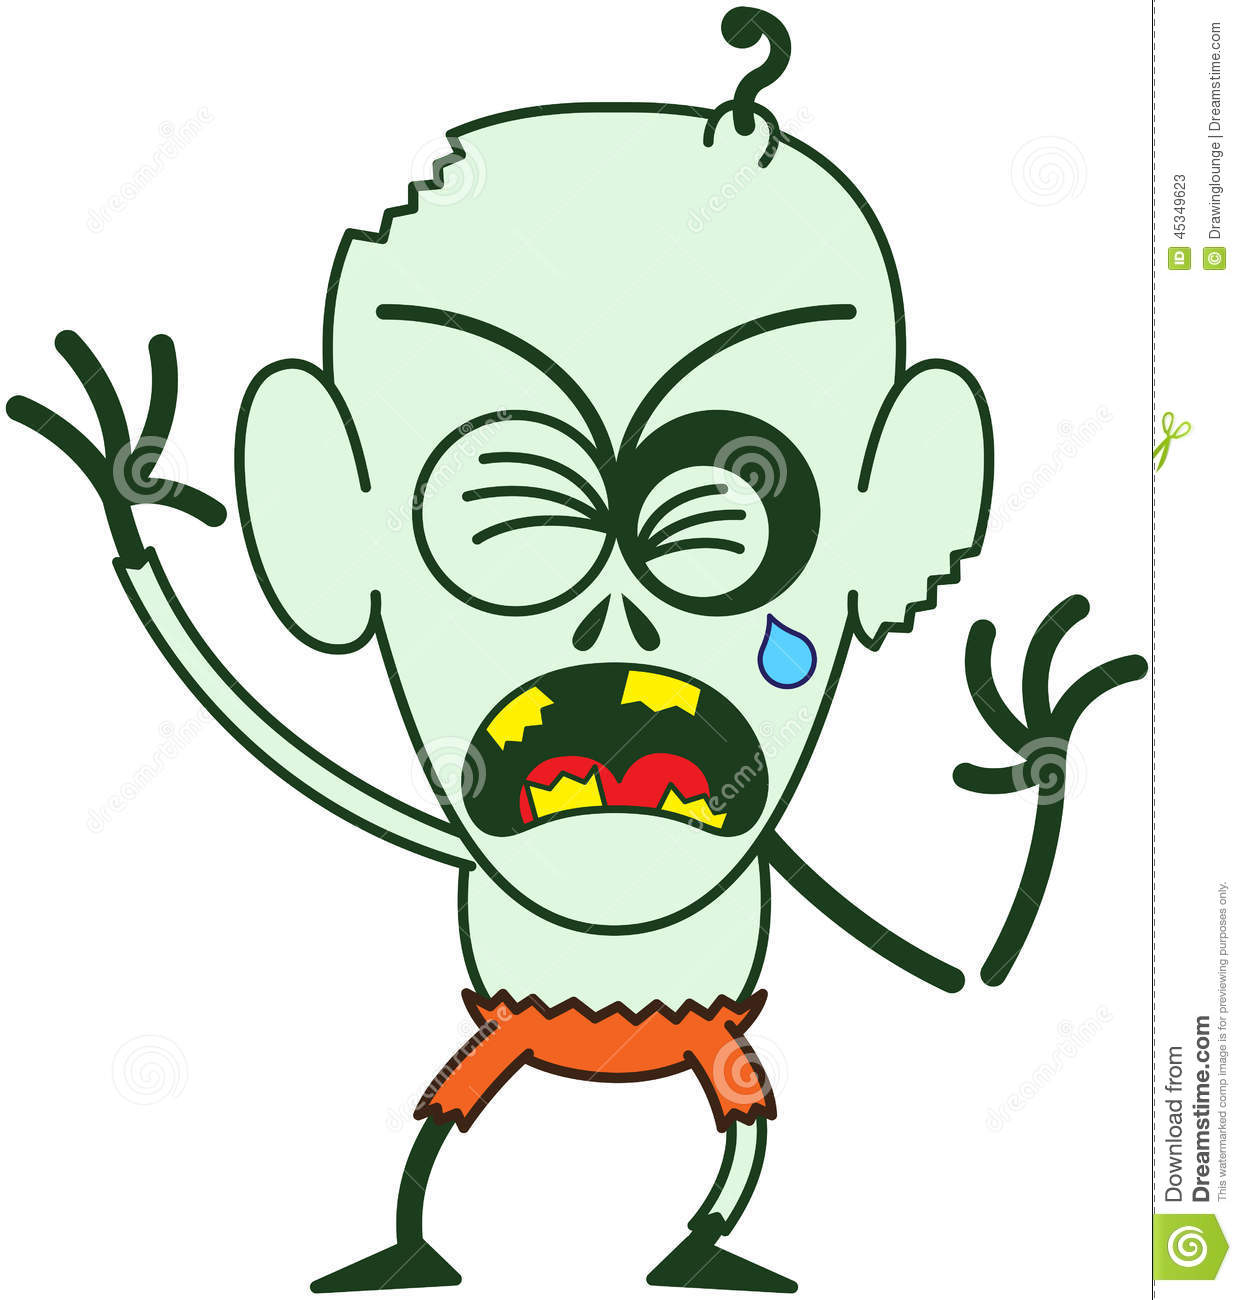 Cute Halloween Zombie Crying When Feeling Distressed Stock Vector ...